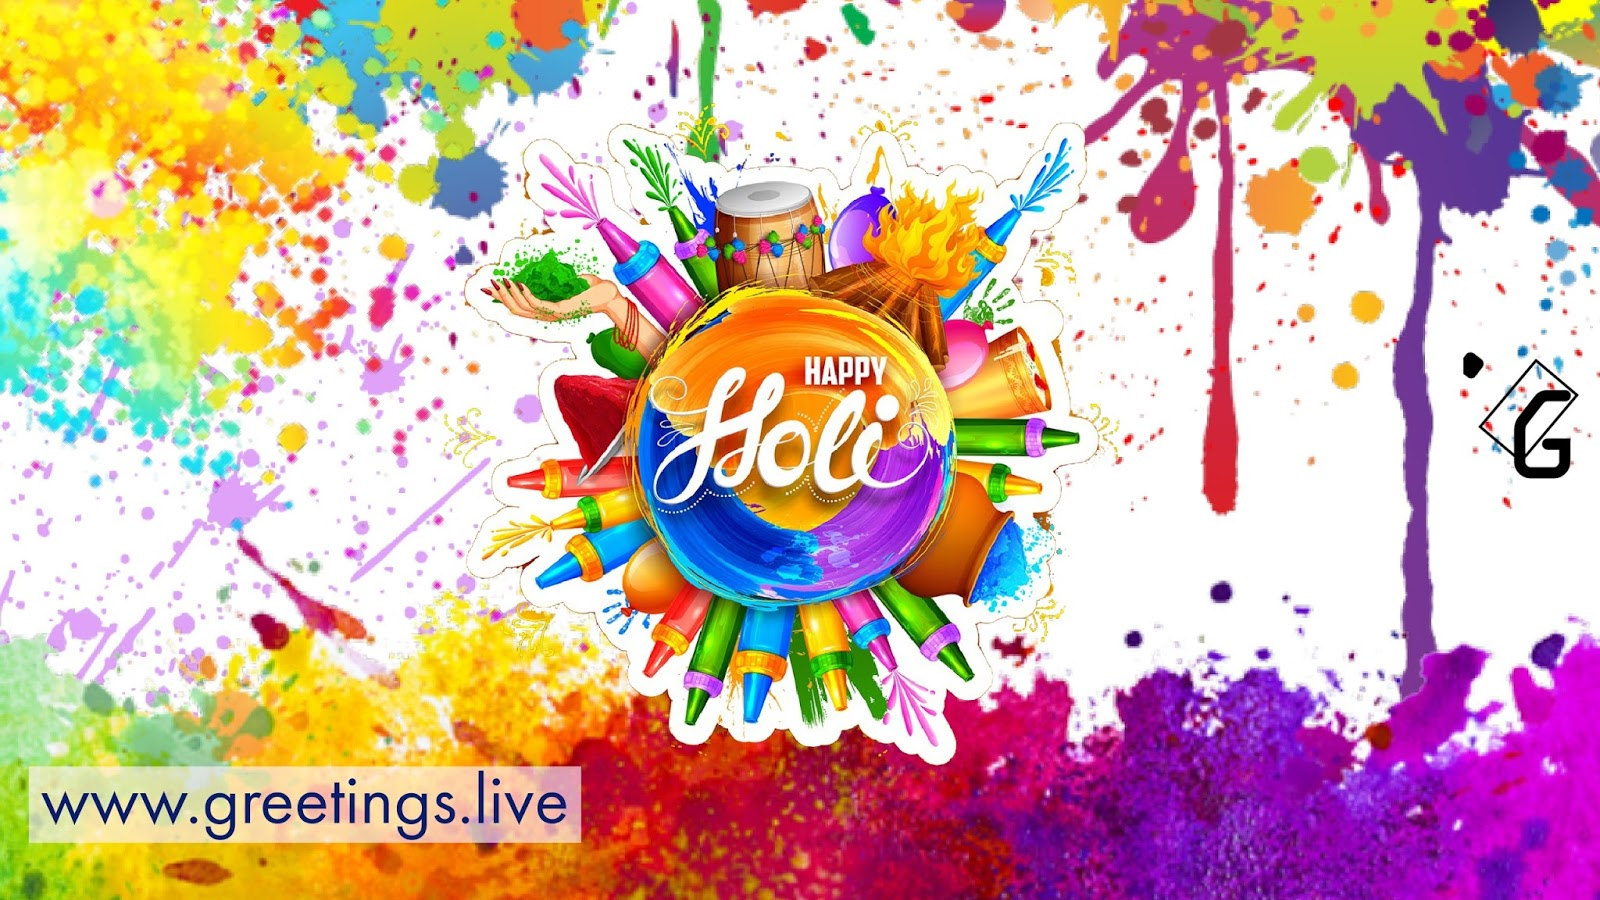 Greetingsve hd images love smile birthday wishes free download colourful happy holi festival greetings india kristyandbryce Image collections